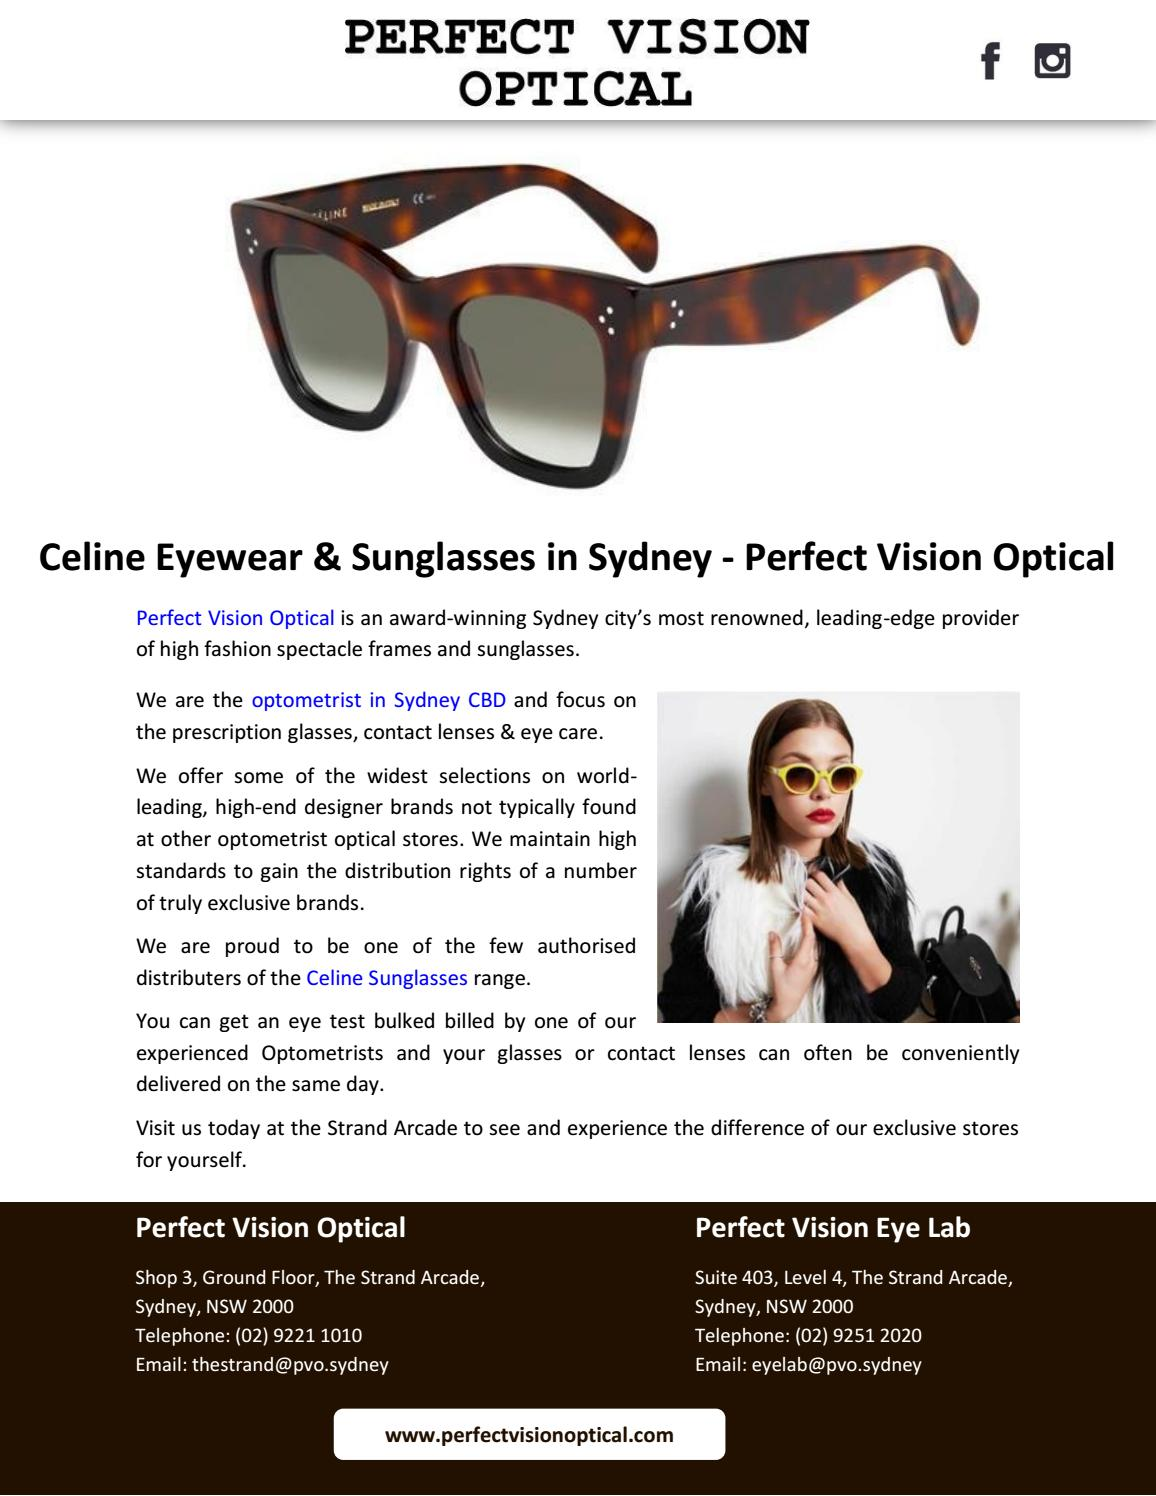 Vision Optical Eyewearamp; Sunglasses Sydney Celine In Perfect By nO08wPk